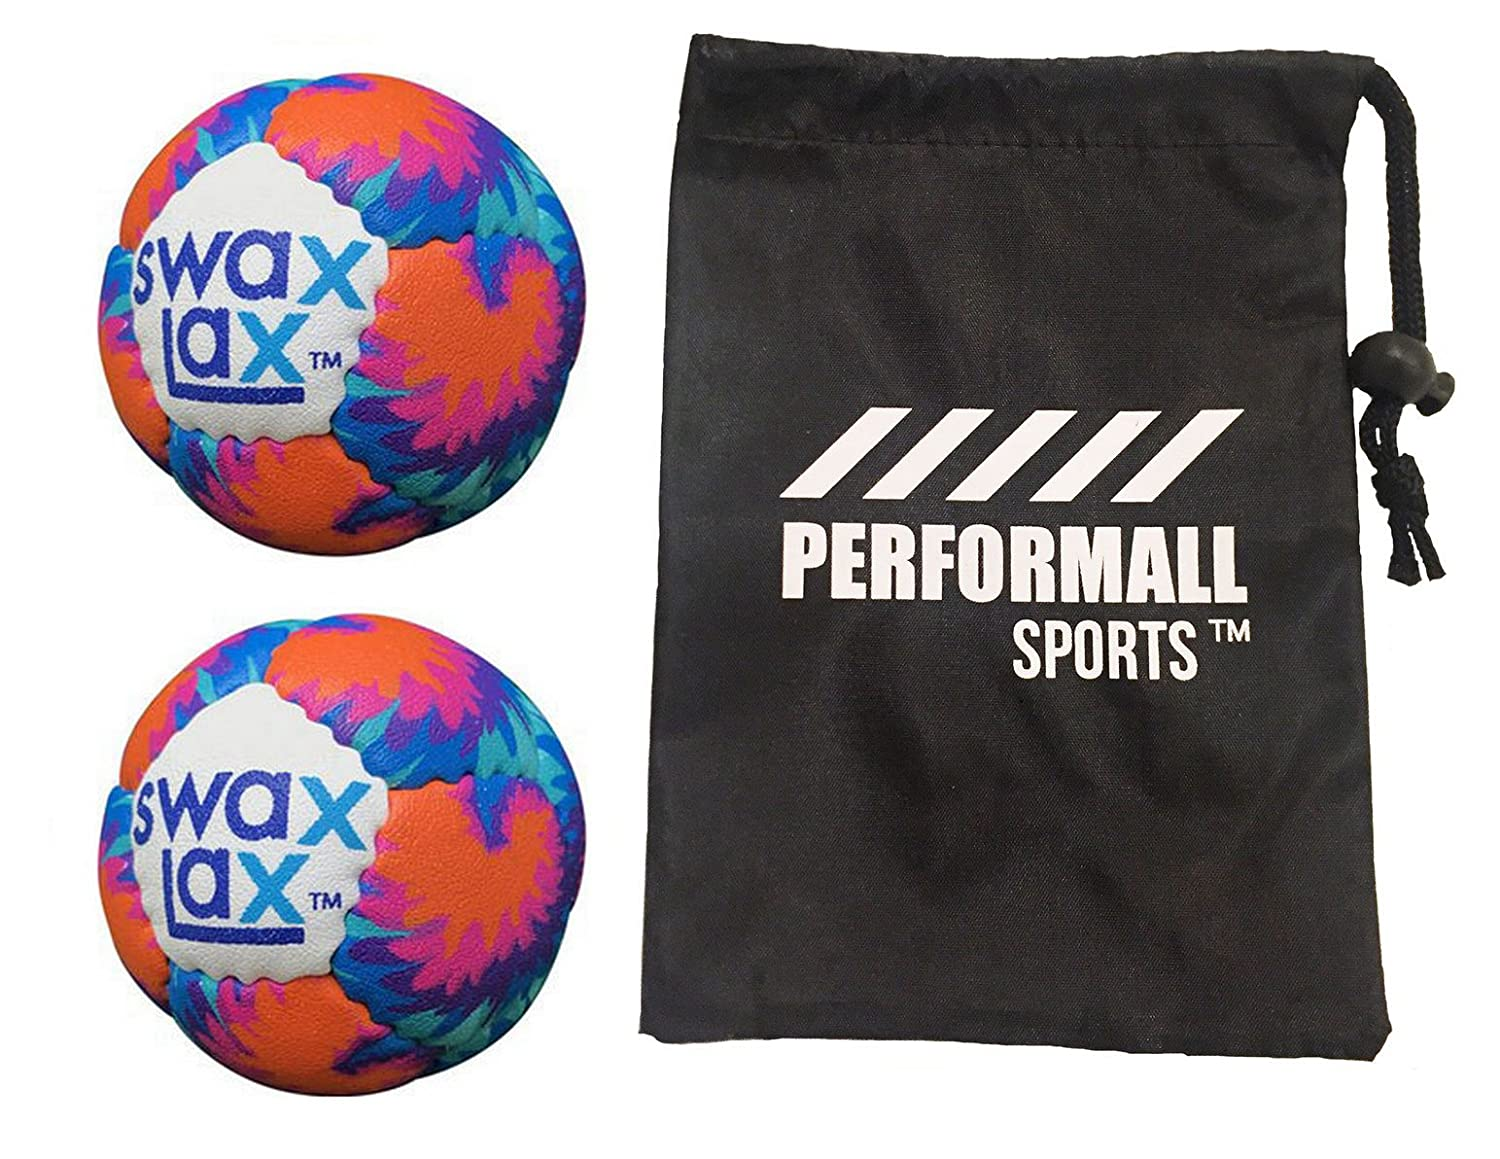 Swax Lax Balls (2 - Pack)ソフトラクロスWeightedトレーニングボールホワイトSwaxラクロスボールwith 1 performallスポーツバッグ0600 – 2p